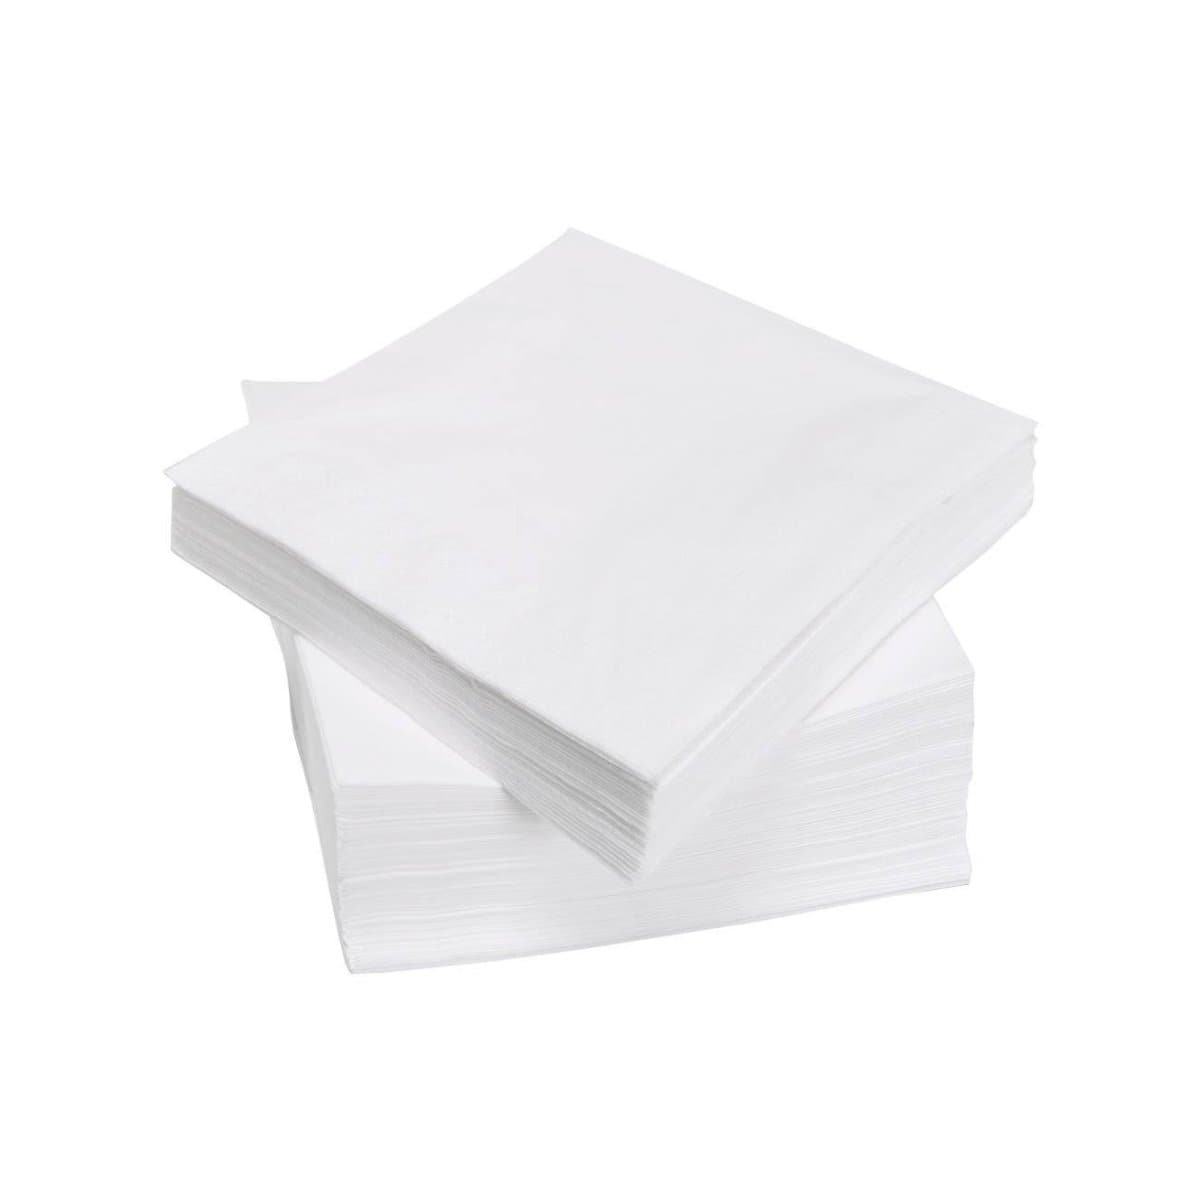 Table Napkins, 100/pack, White